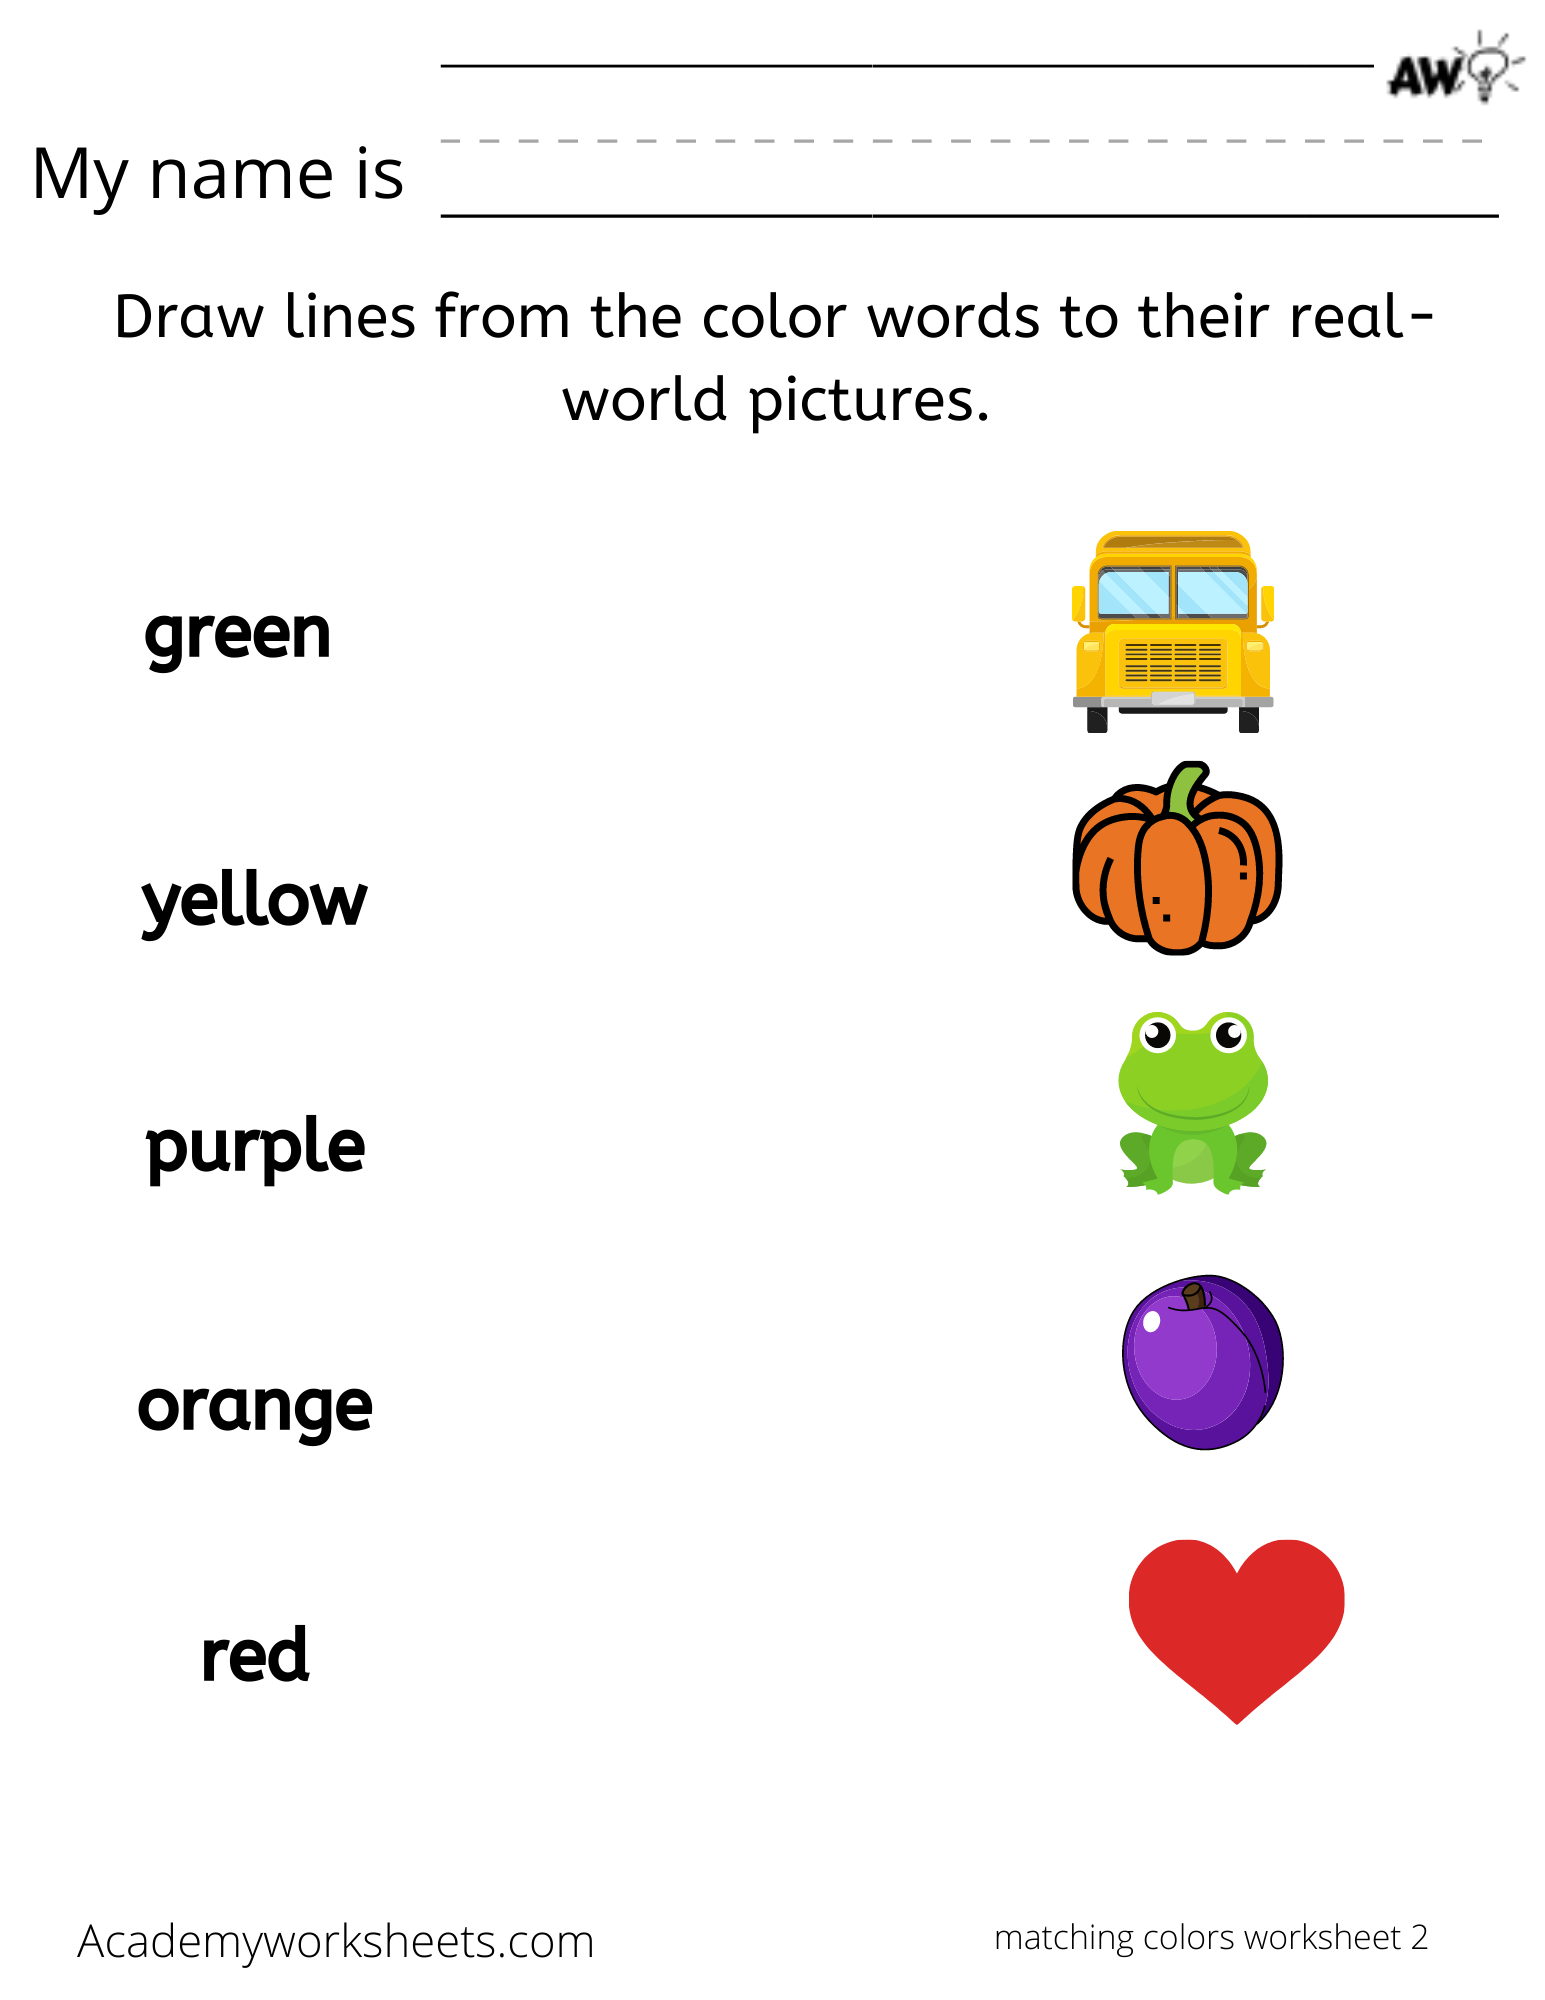 match the color to the spelling of the word